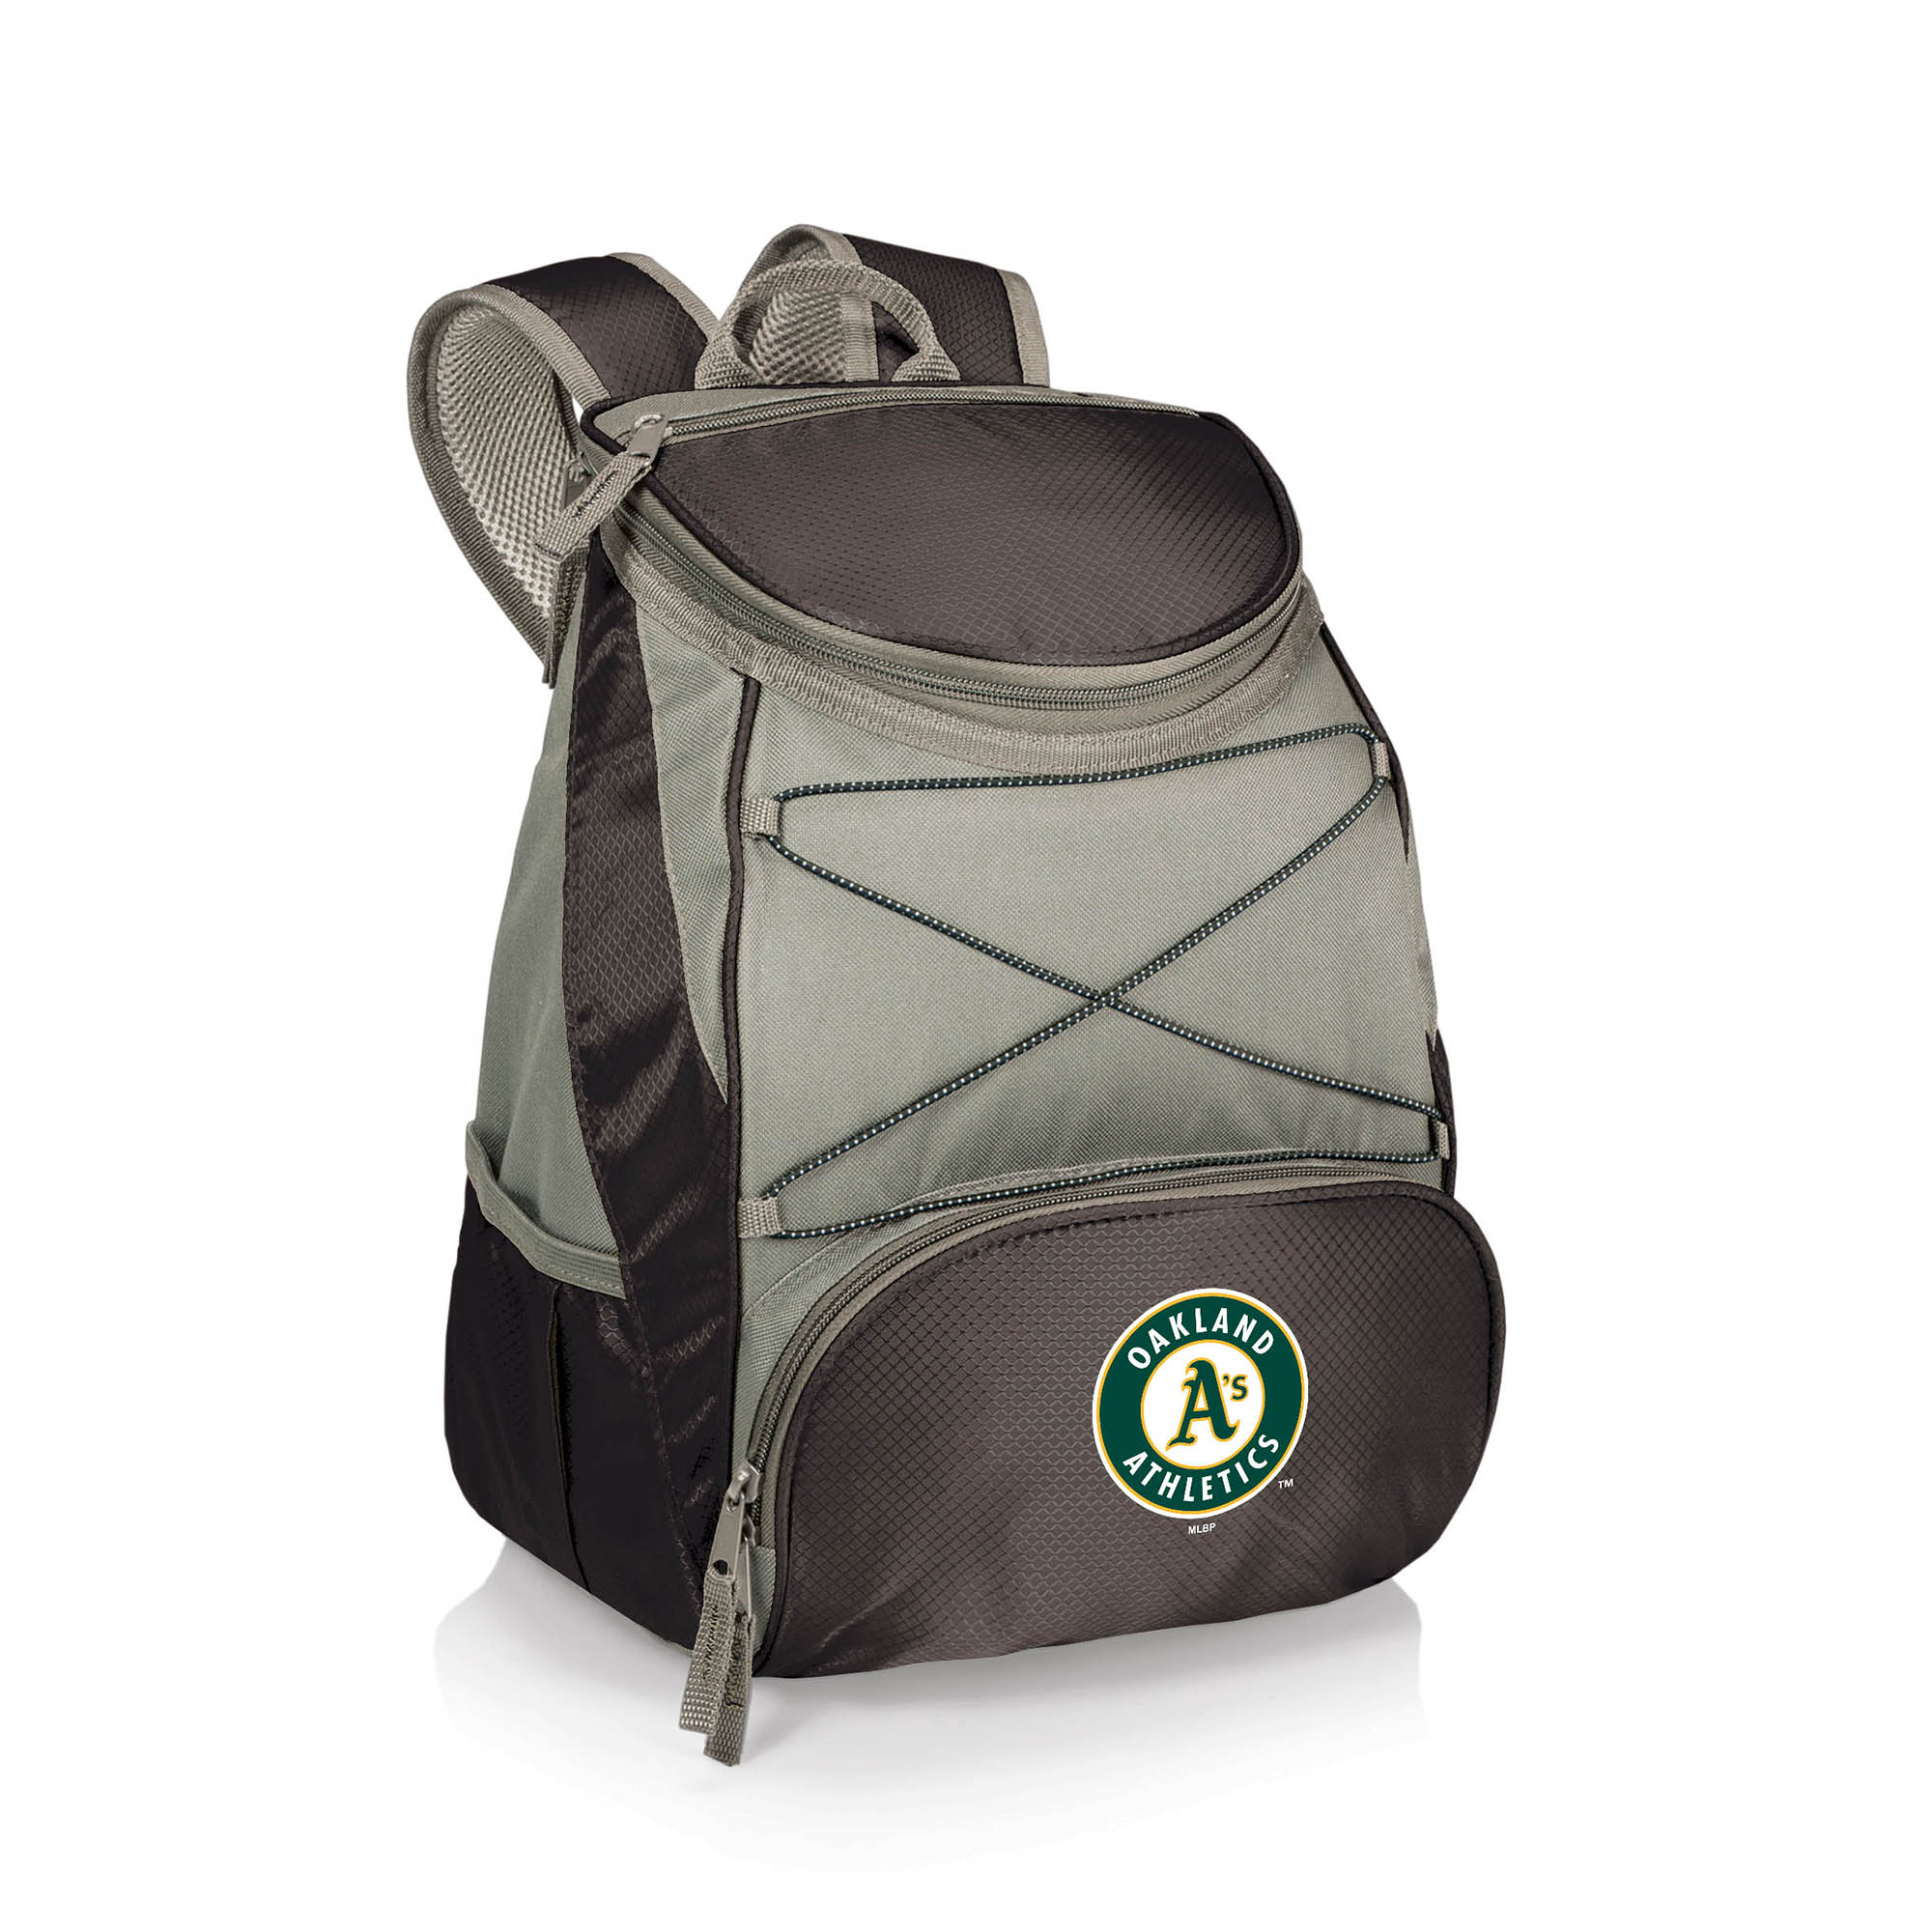 Oakland Athletics PTX Backpack Cooler - Black - No Size